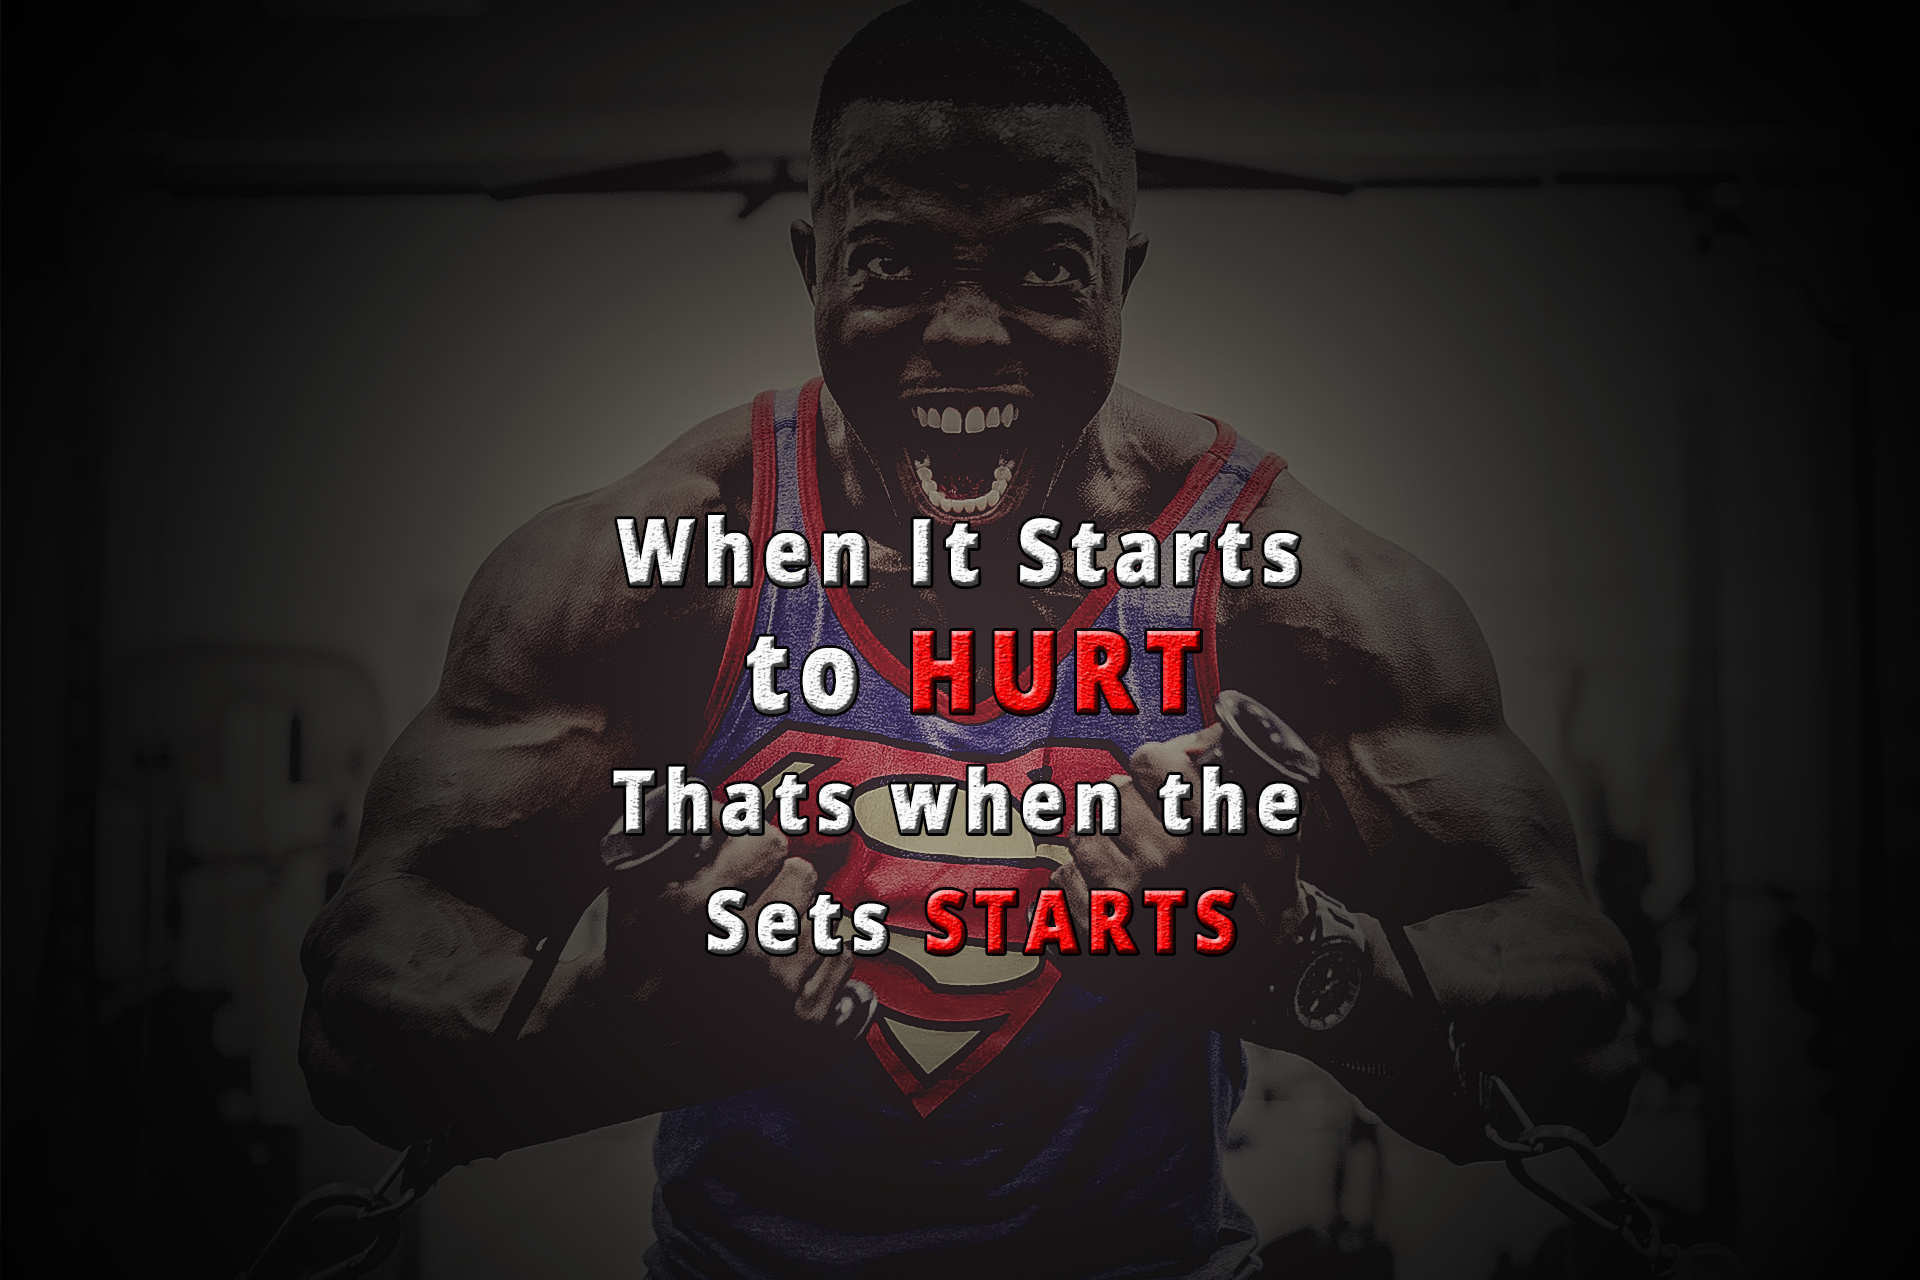 Motivational Workout Wallpaper 75 images